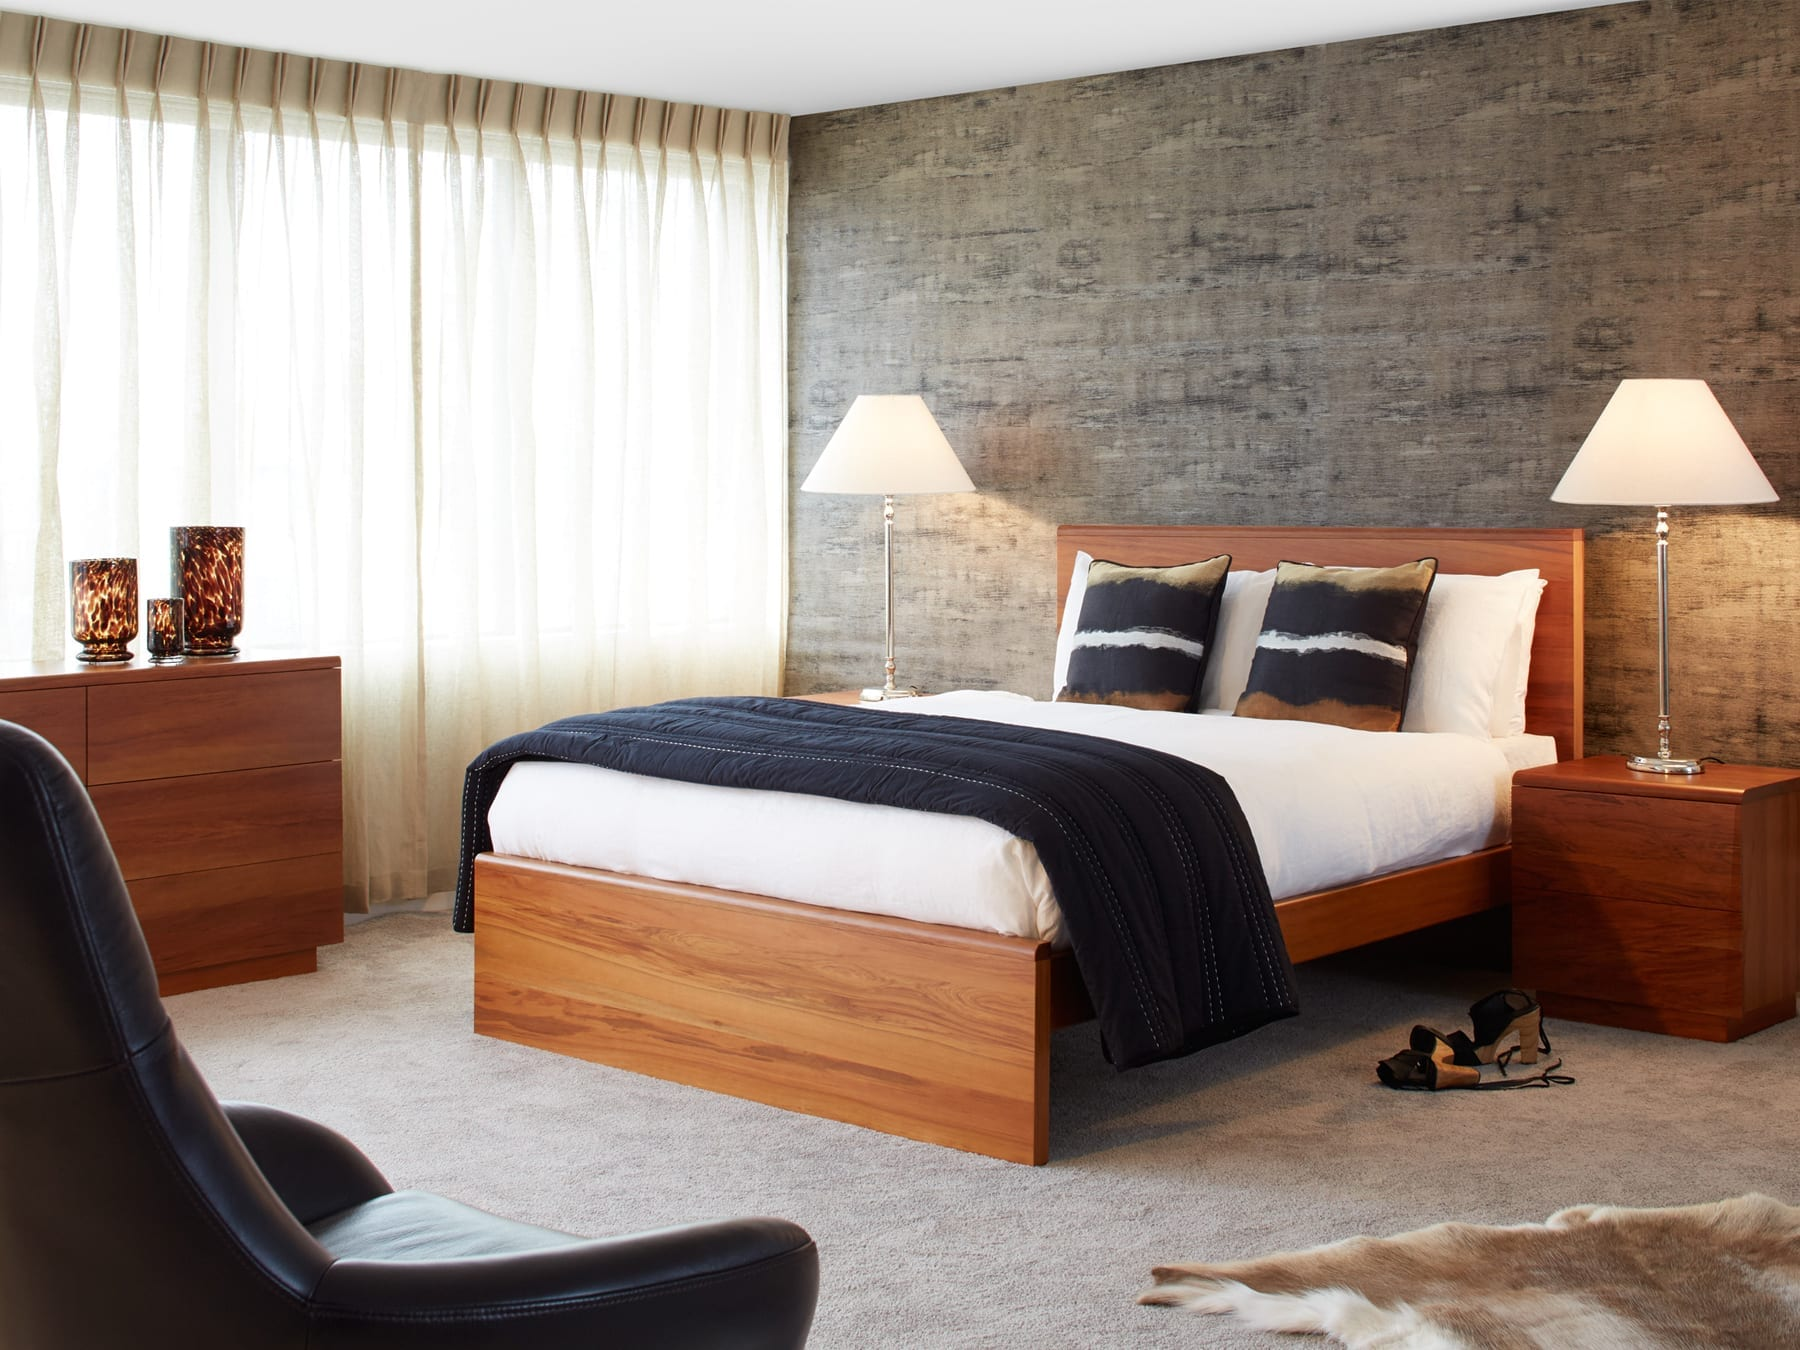 East West Designs Wynyard Collection Bedroom Furniture available at McKenzie & Willis